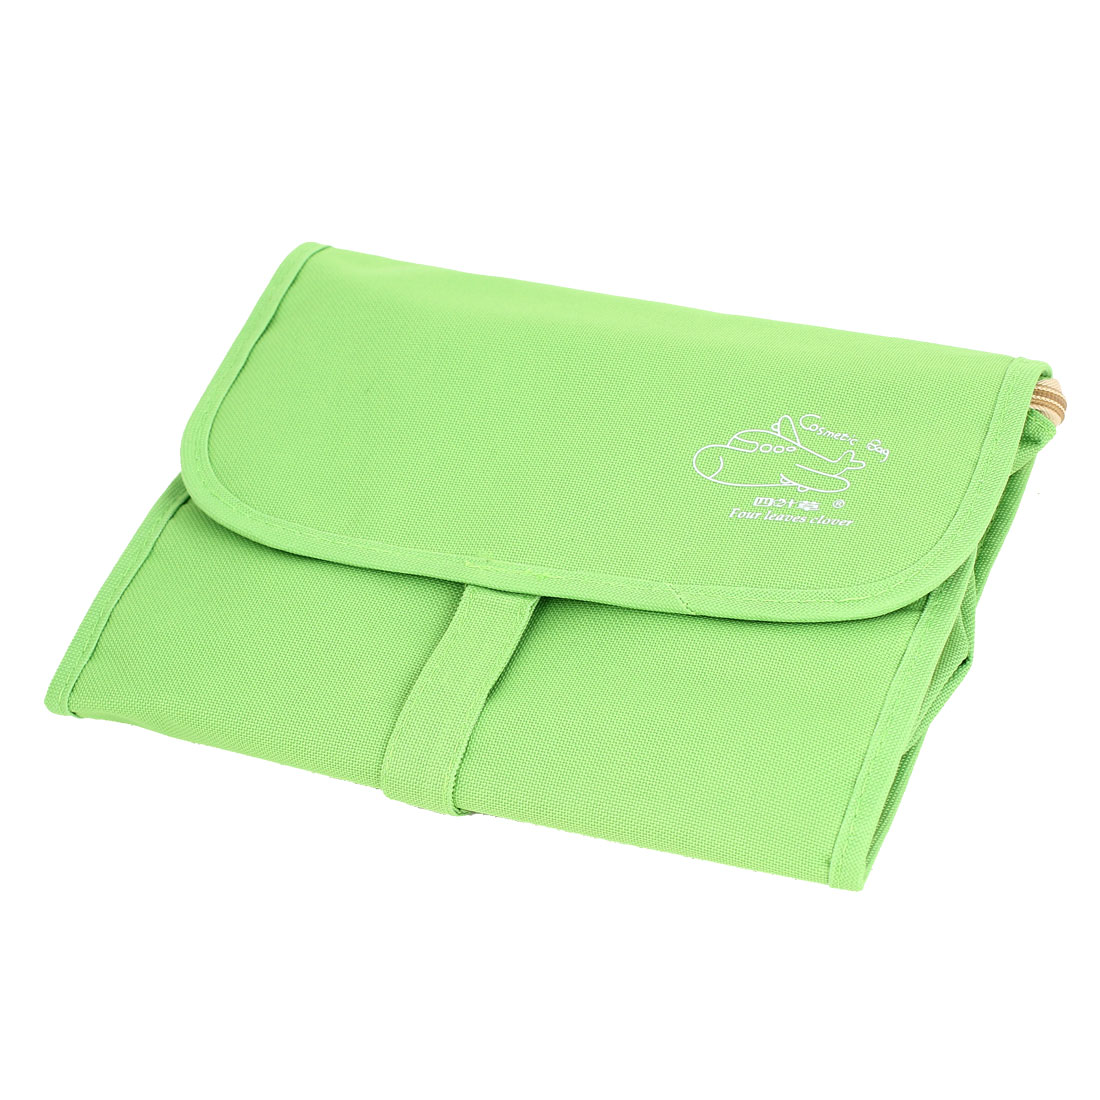 Sports Travel Toiletry Toiletries Cosmetic Makeup Foldable Wash Bag Green